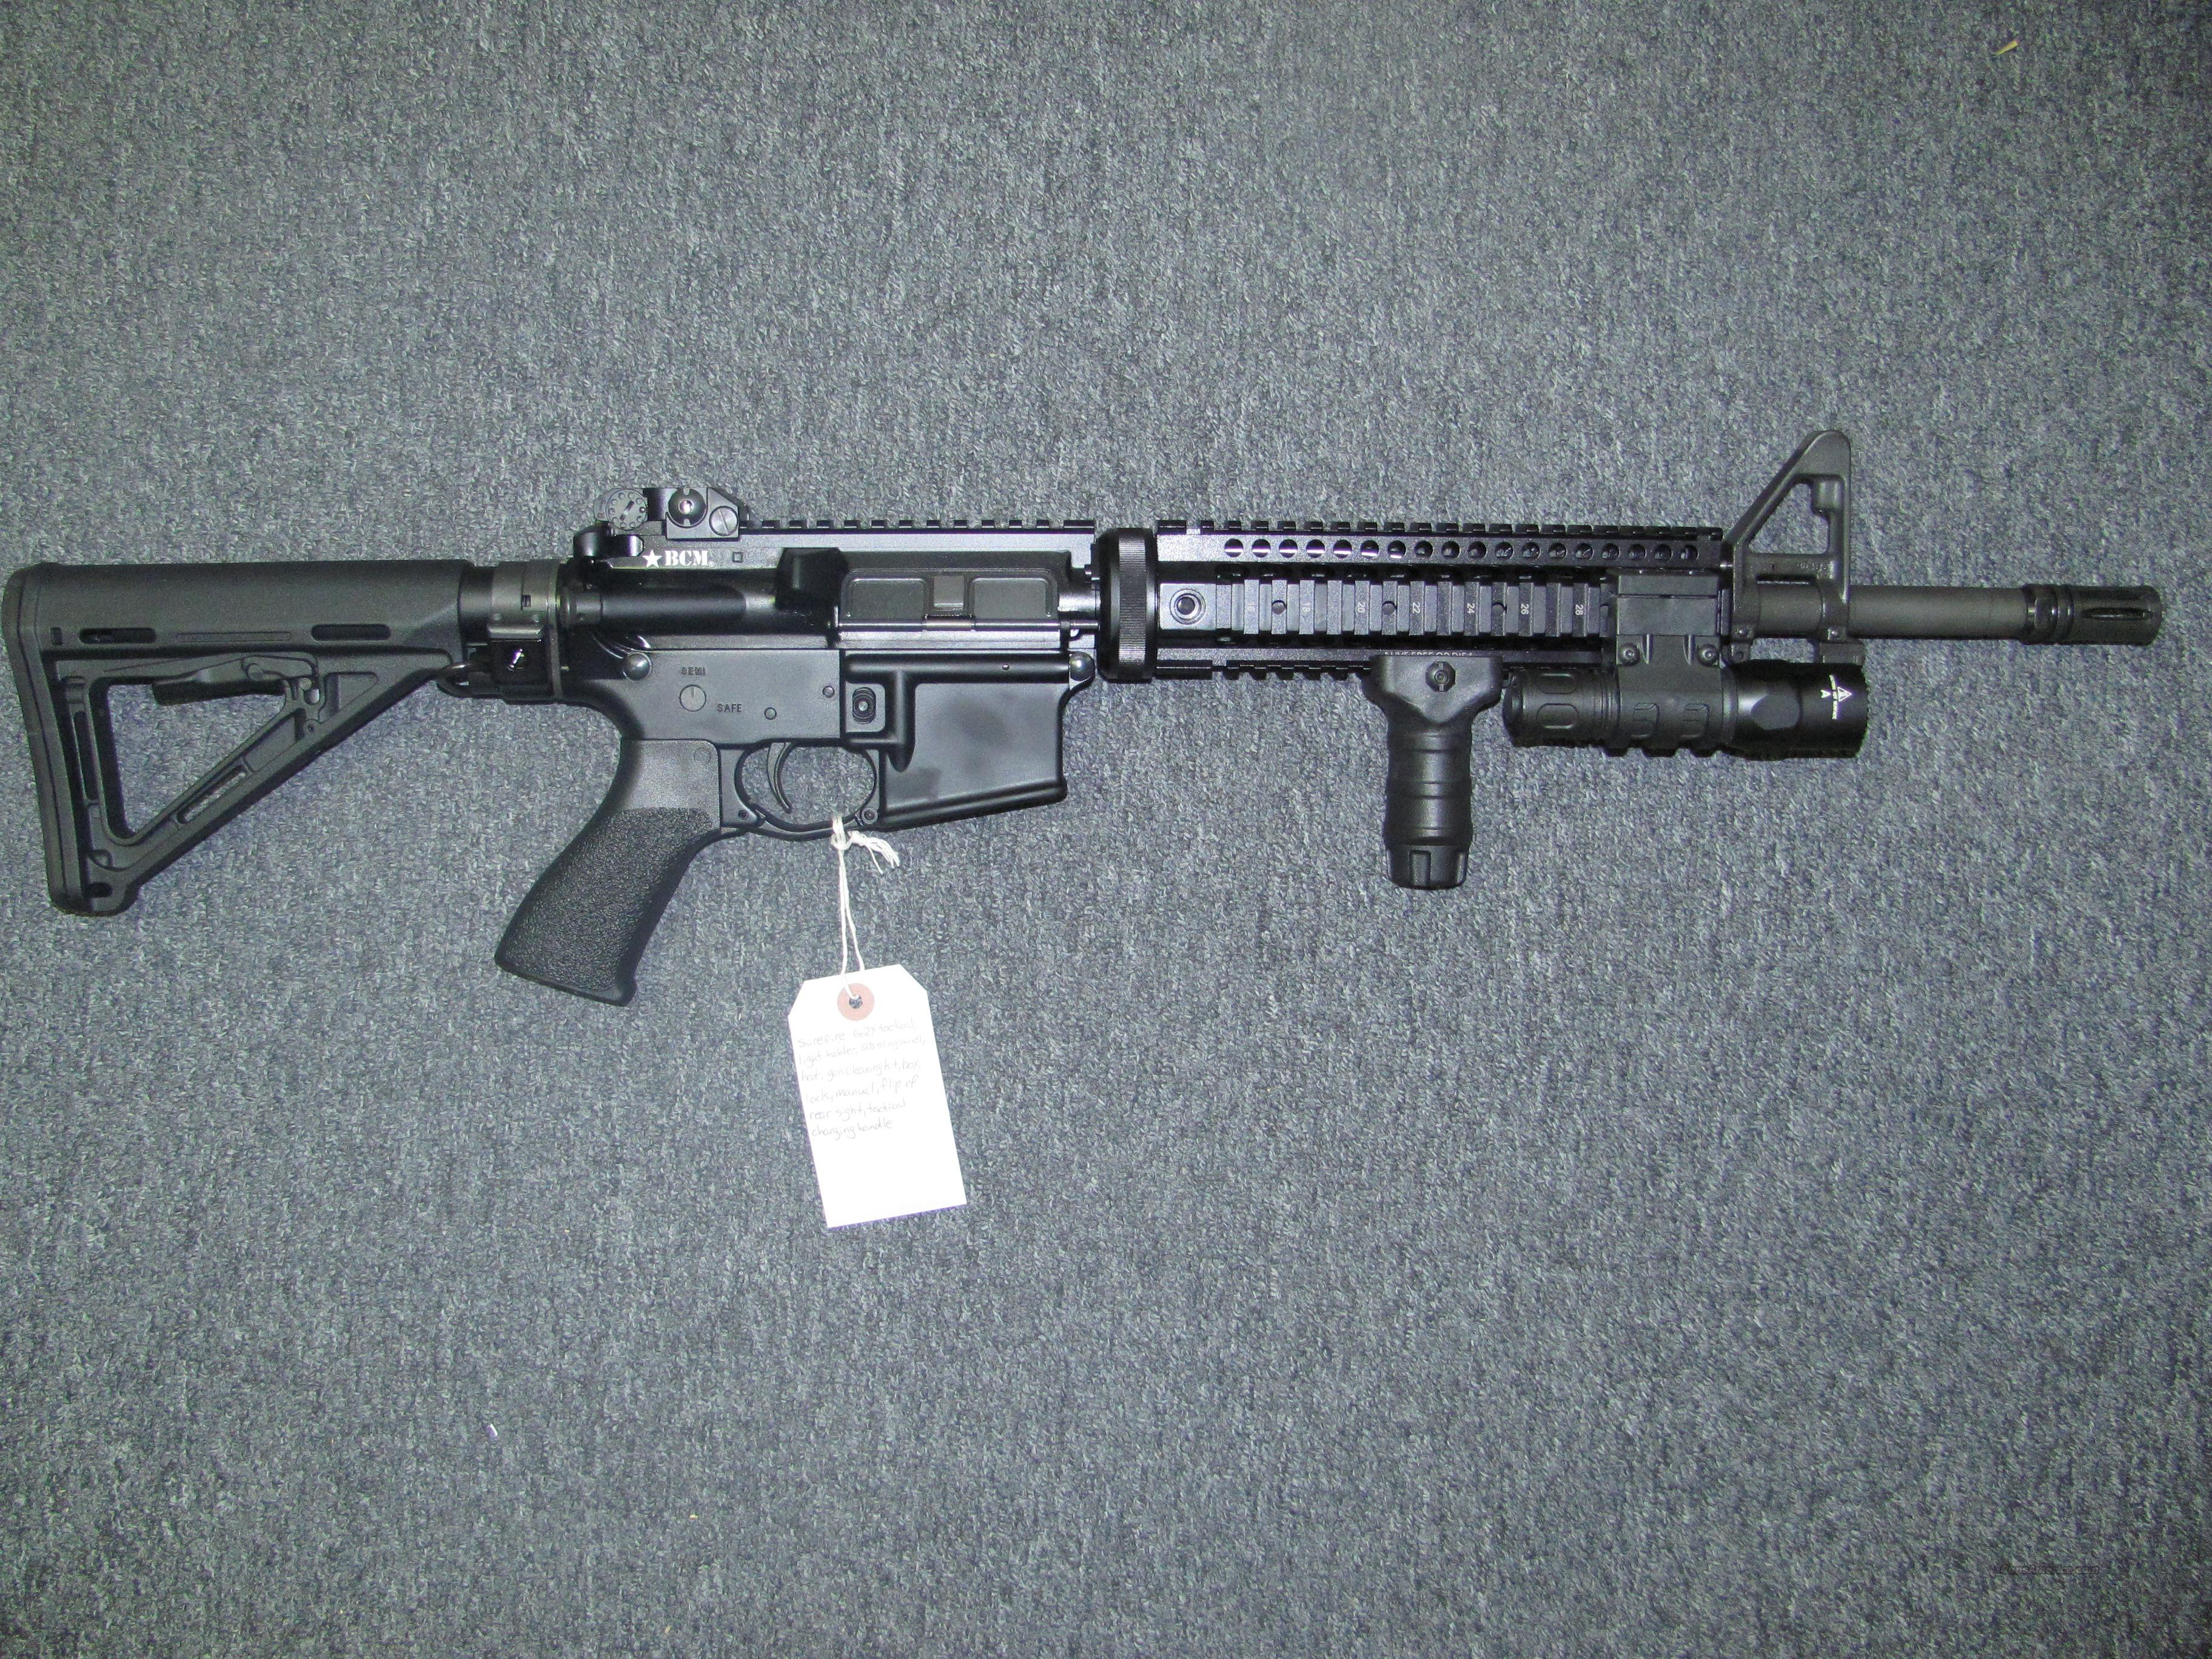 M4A1 EAG Carbine  Guns > Rifles > AR-15 Rifles - Small Manufacturers > Complete Rifle